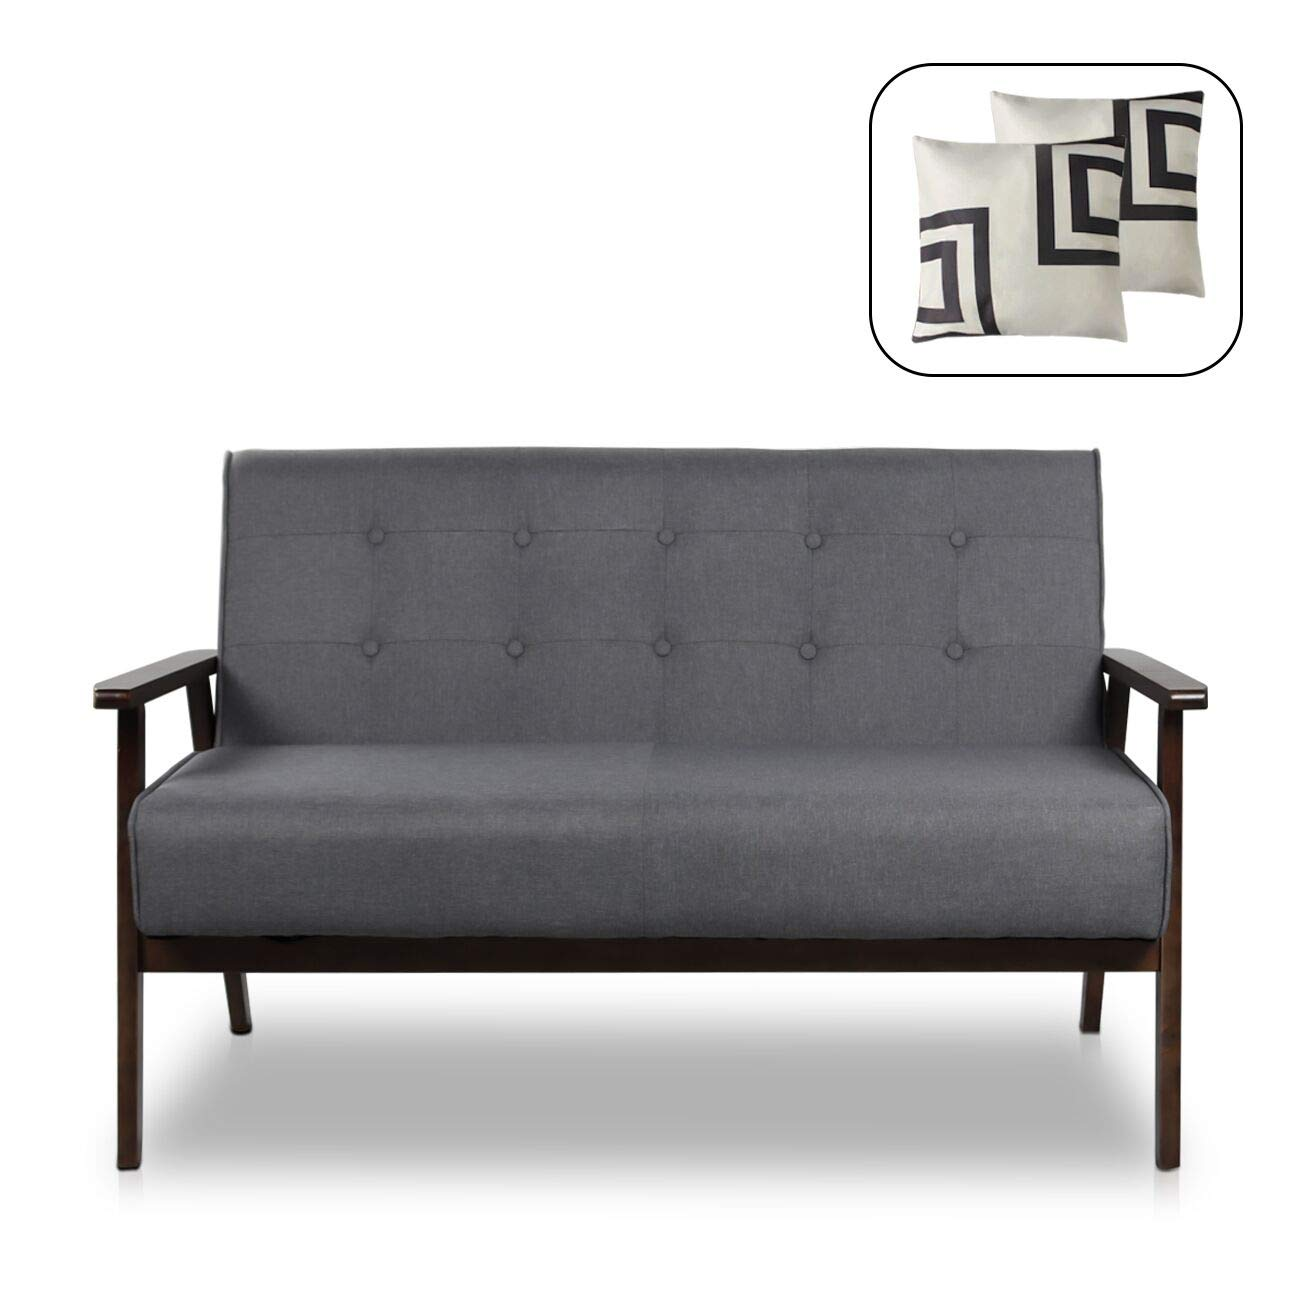 Mid-Century Modern Solid Loveseat Sofa Upholstered Fabric Couch 2-seat Wood Armchair Living Room/ Outdoor Lounge Chair, 50 W